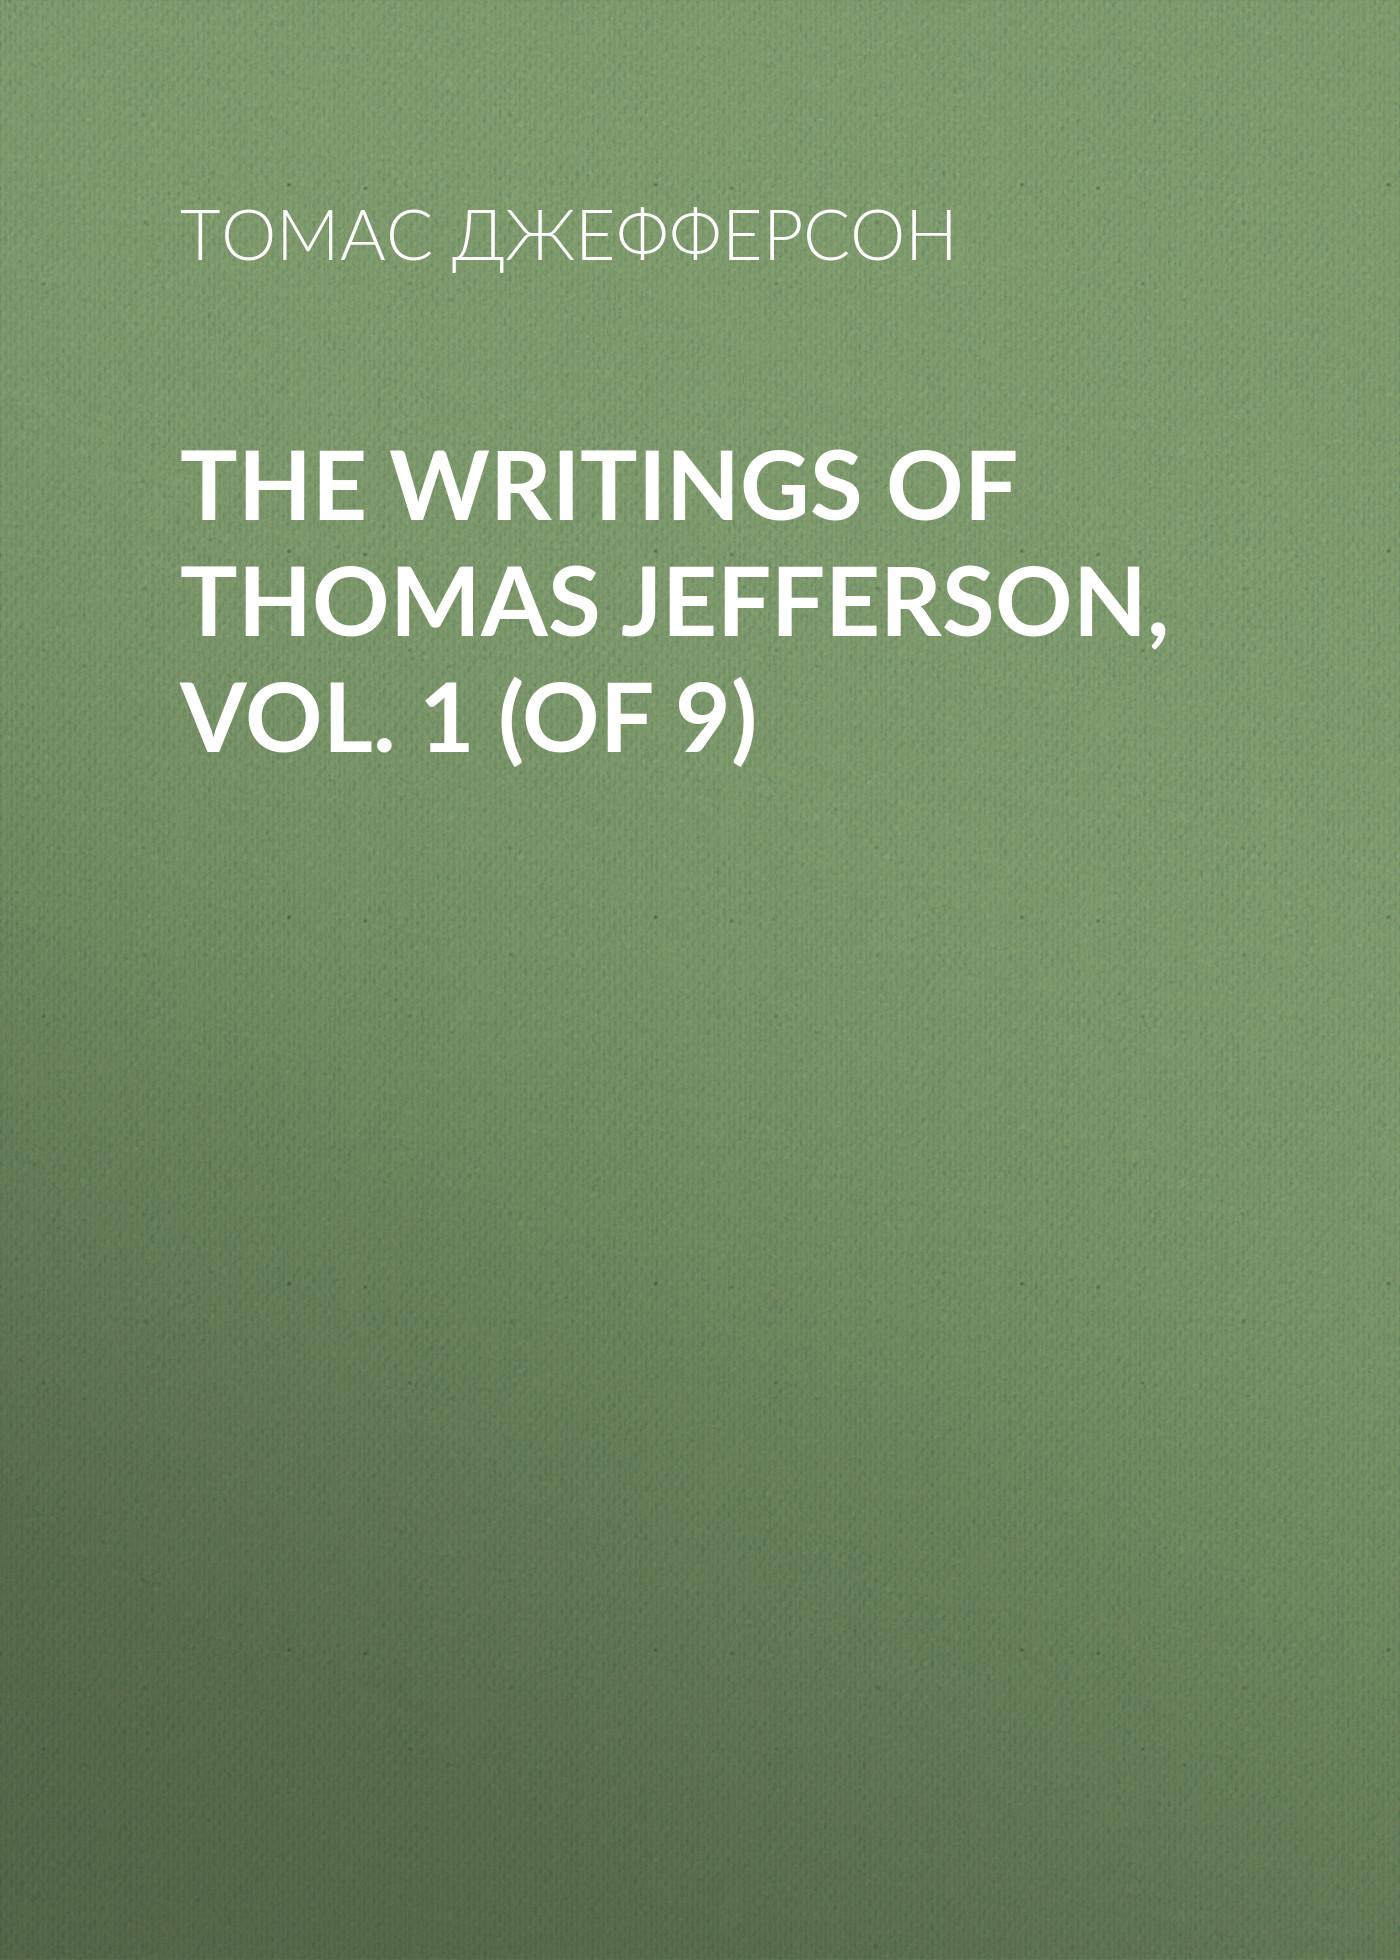 Томас Джефферсон The Writings of Thomas Jefferson, Vol. 1 (of 9) jefferson starship the definitive concert